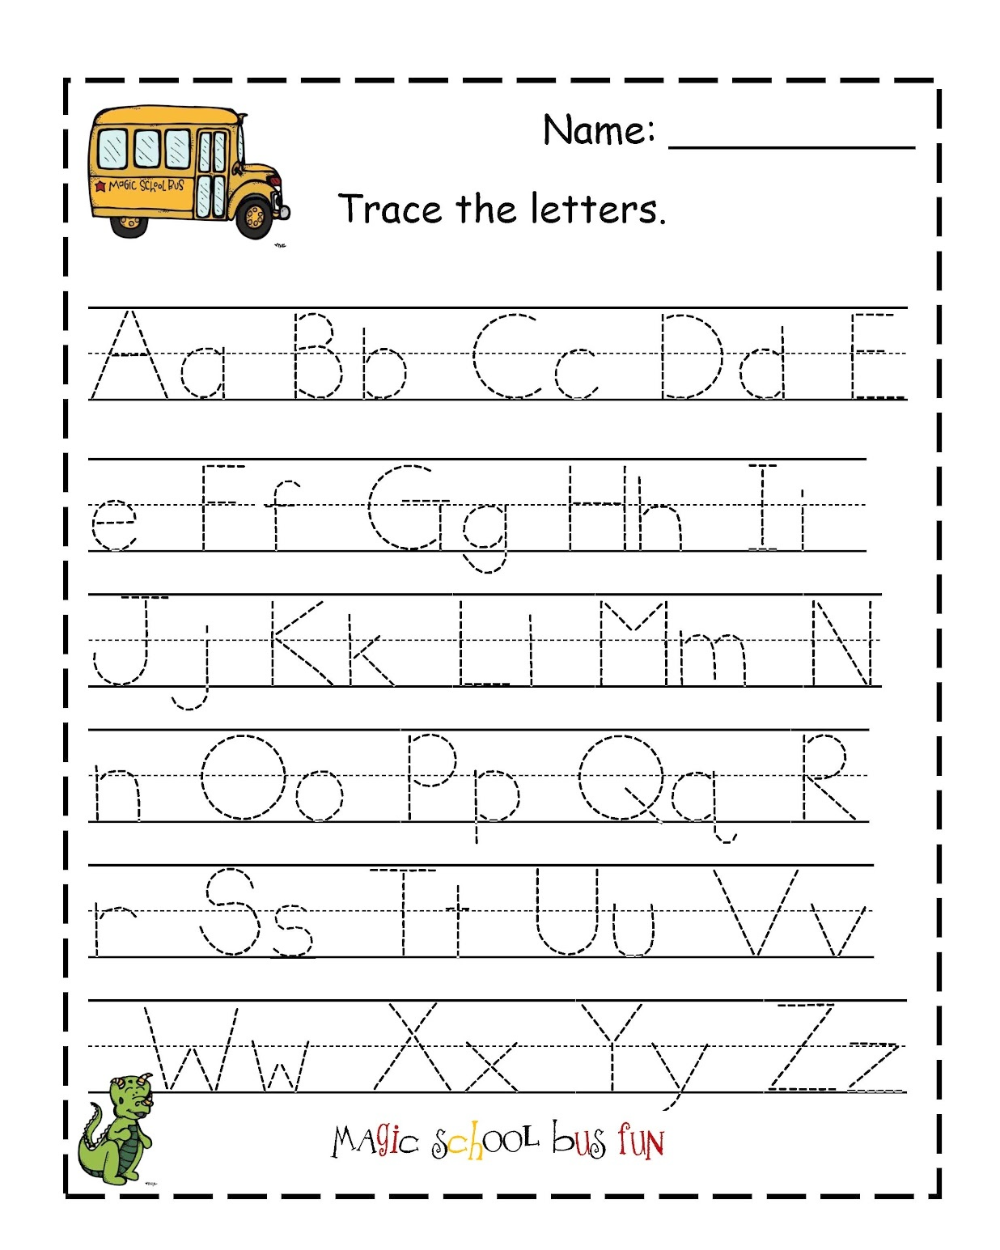 Traceable Letter Worksheets To Print Kindergarten Worksheets Printable Kindergarten Worksheets Tracing Worksheets [ 1250 x 1000 Pixel ]